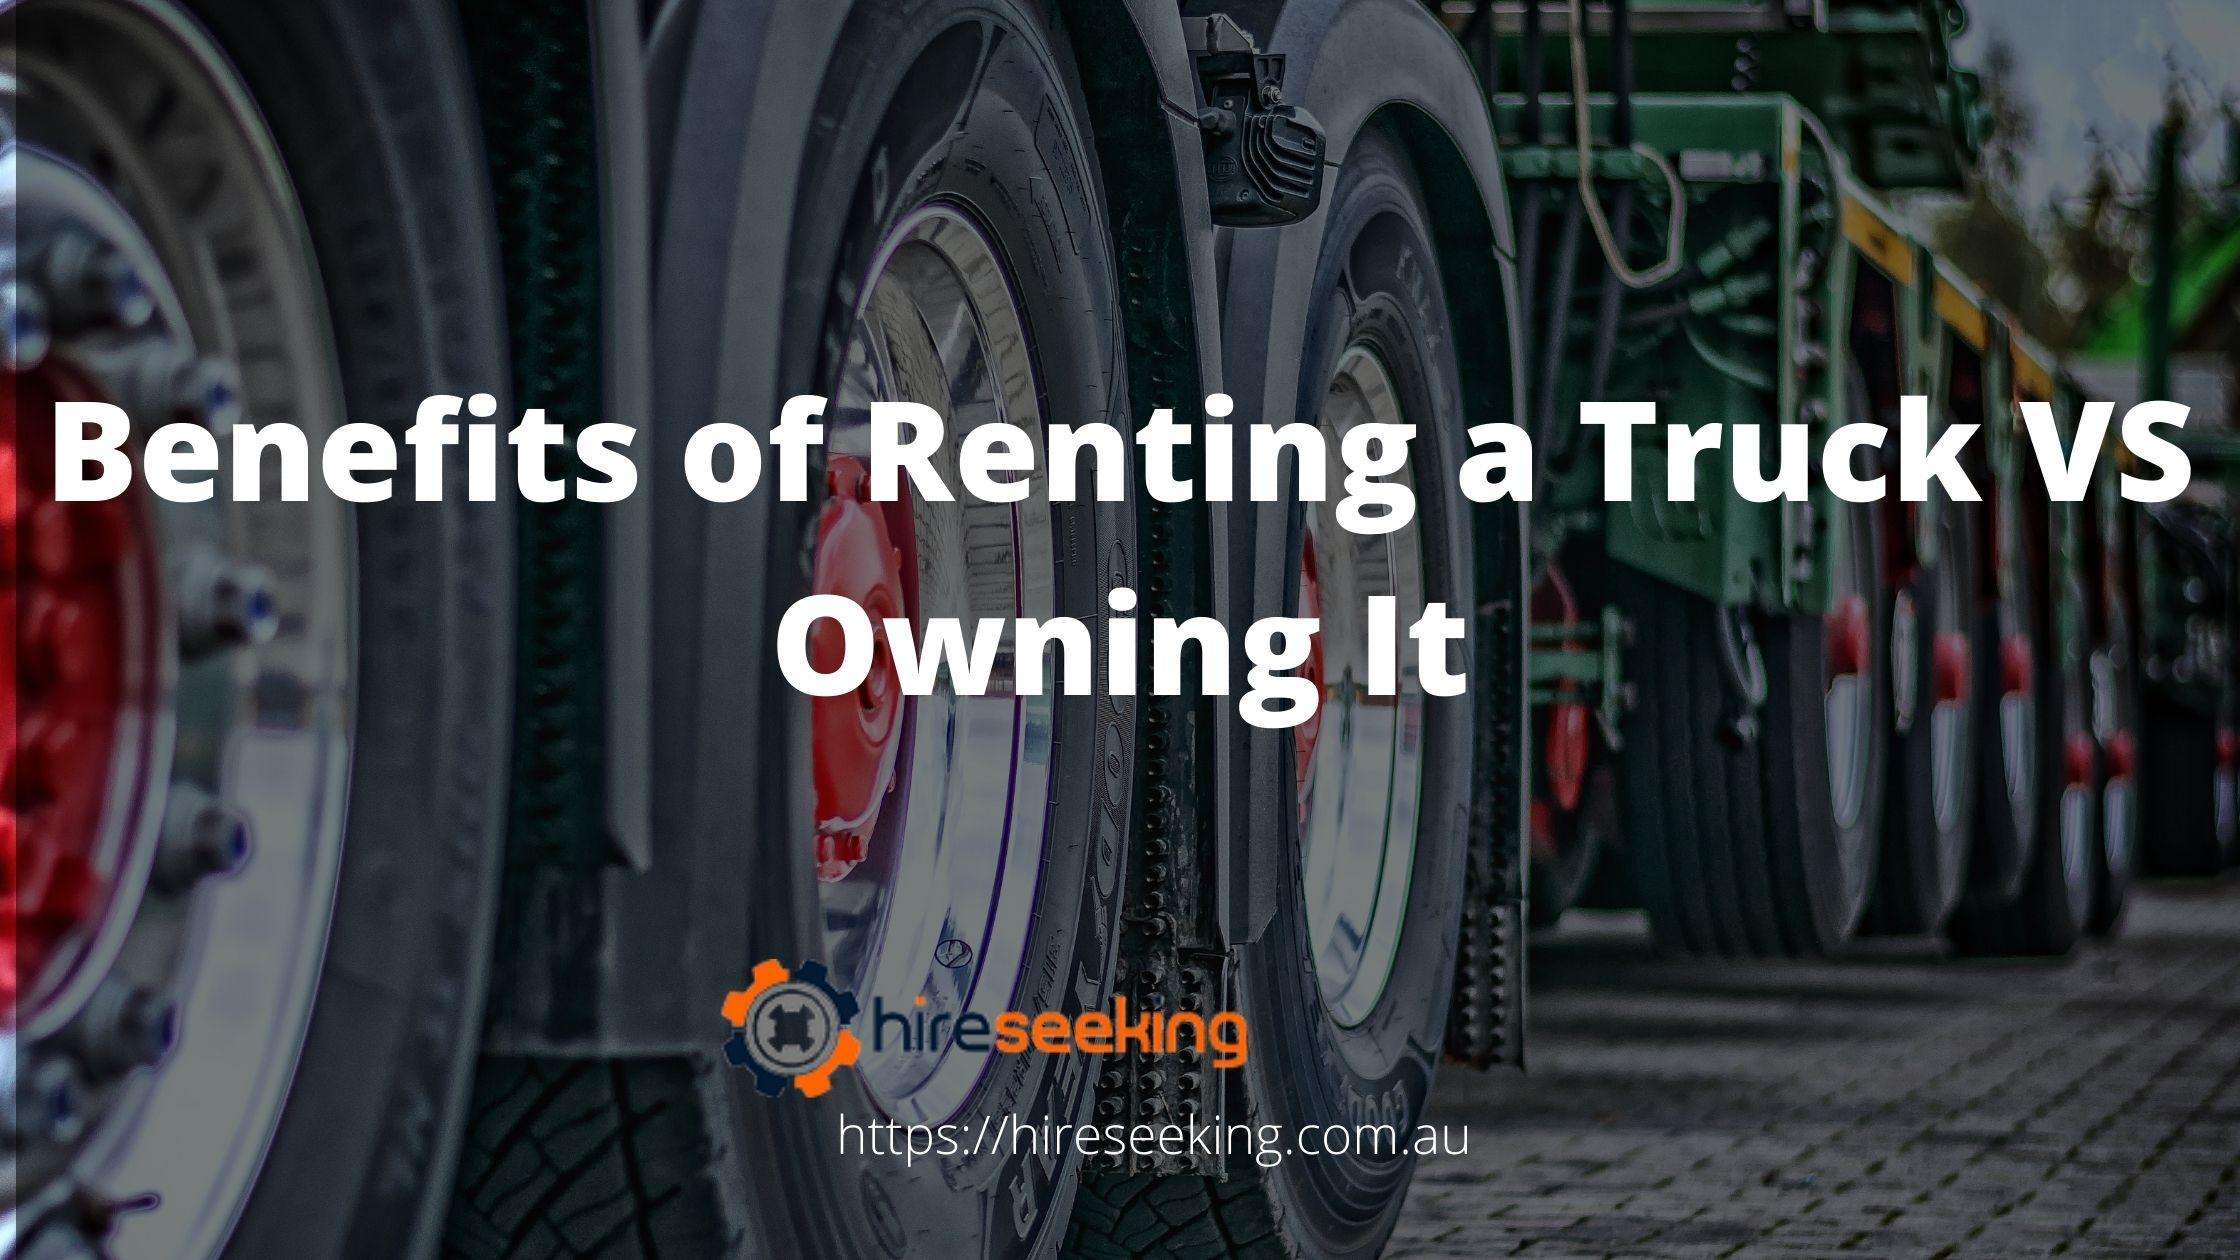 Benefits of Renting a Truck VS Owning It